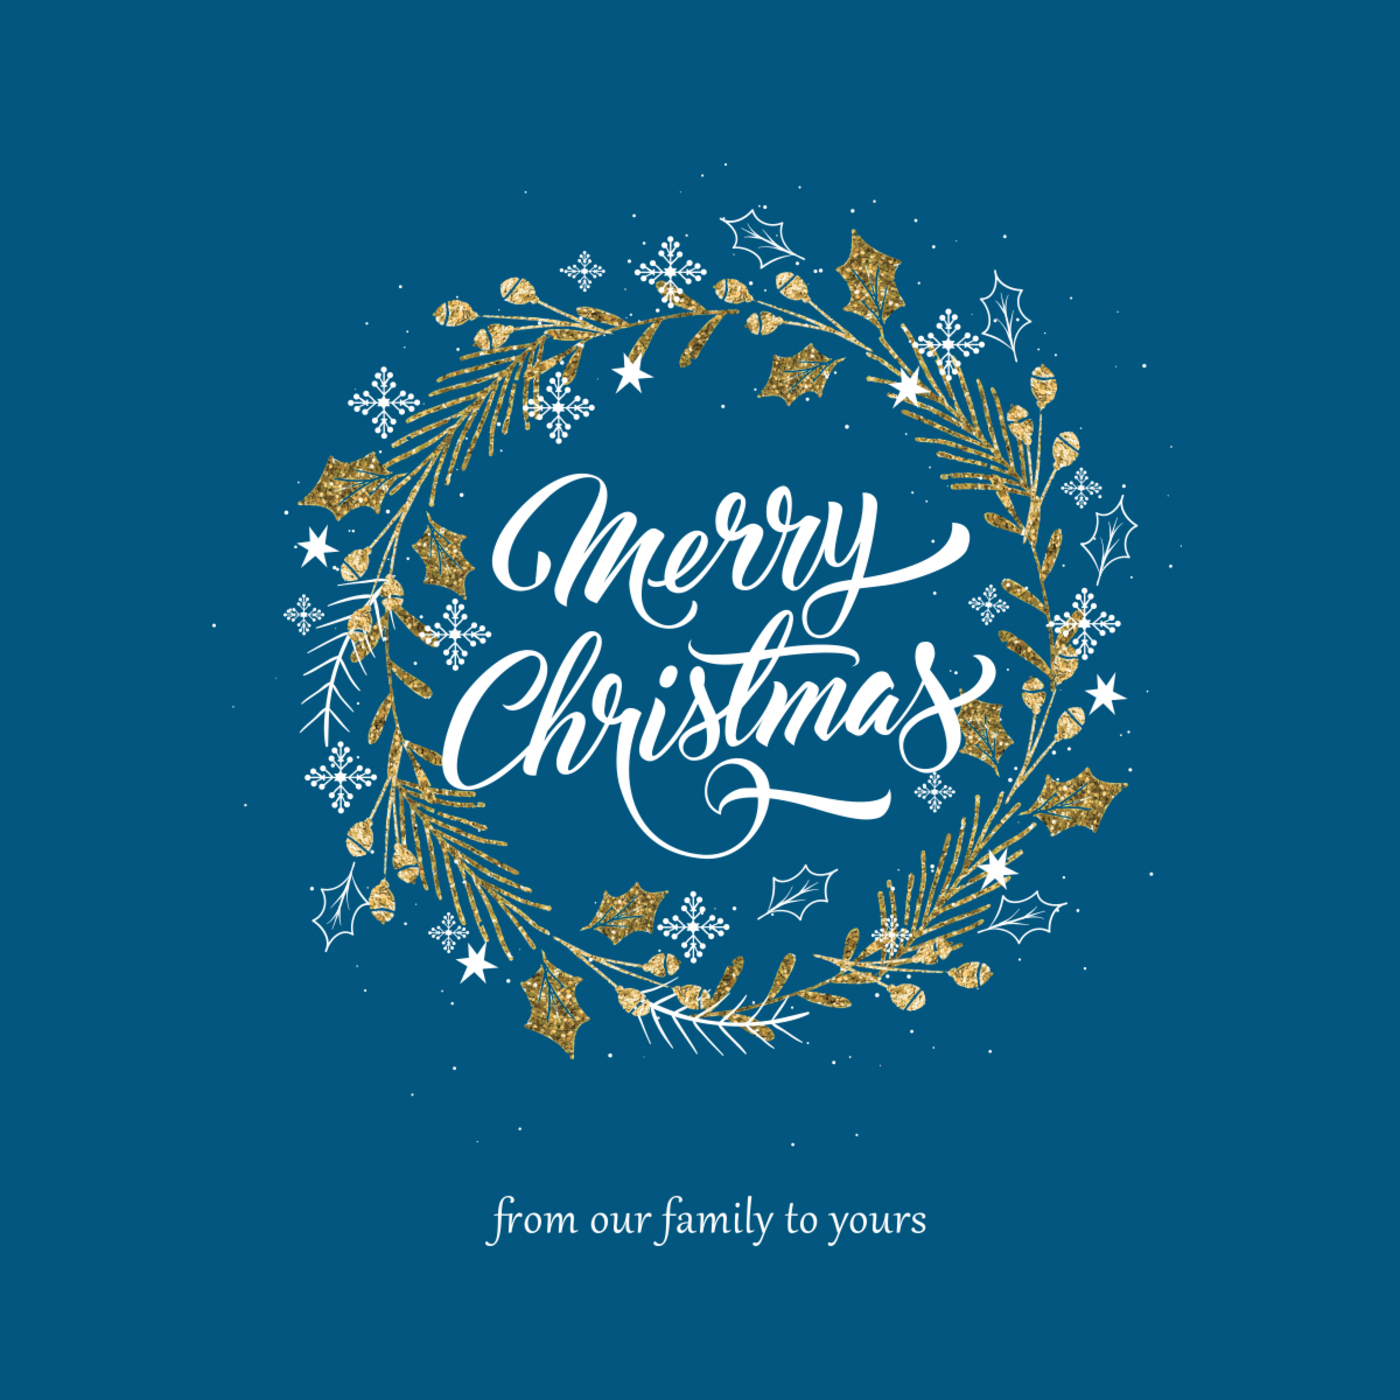 we pray you and your family will experience the joy and peace of christ this christmas season as you gather together with friends and family to celebrate